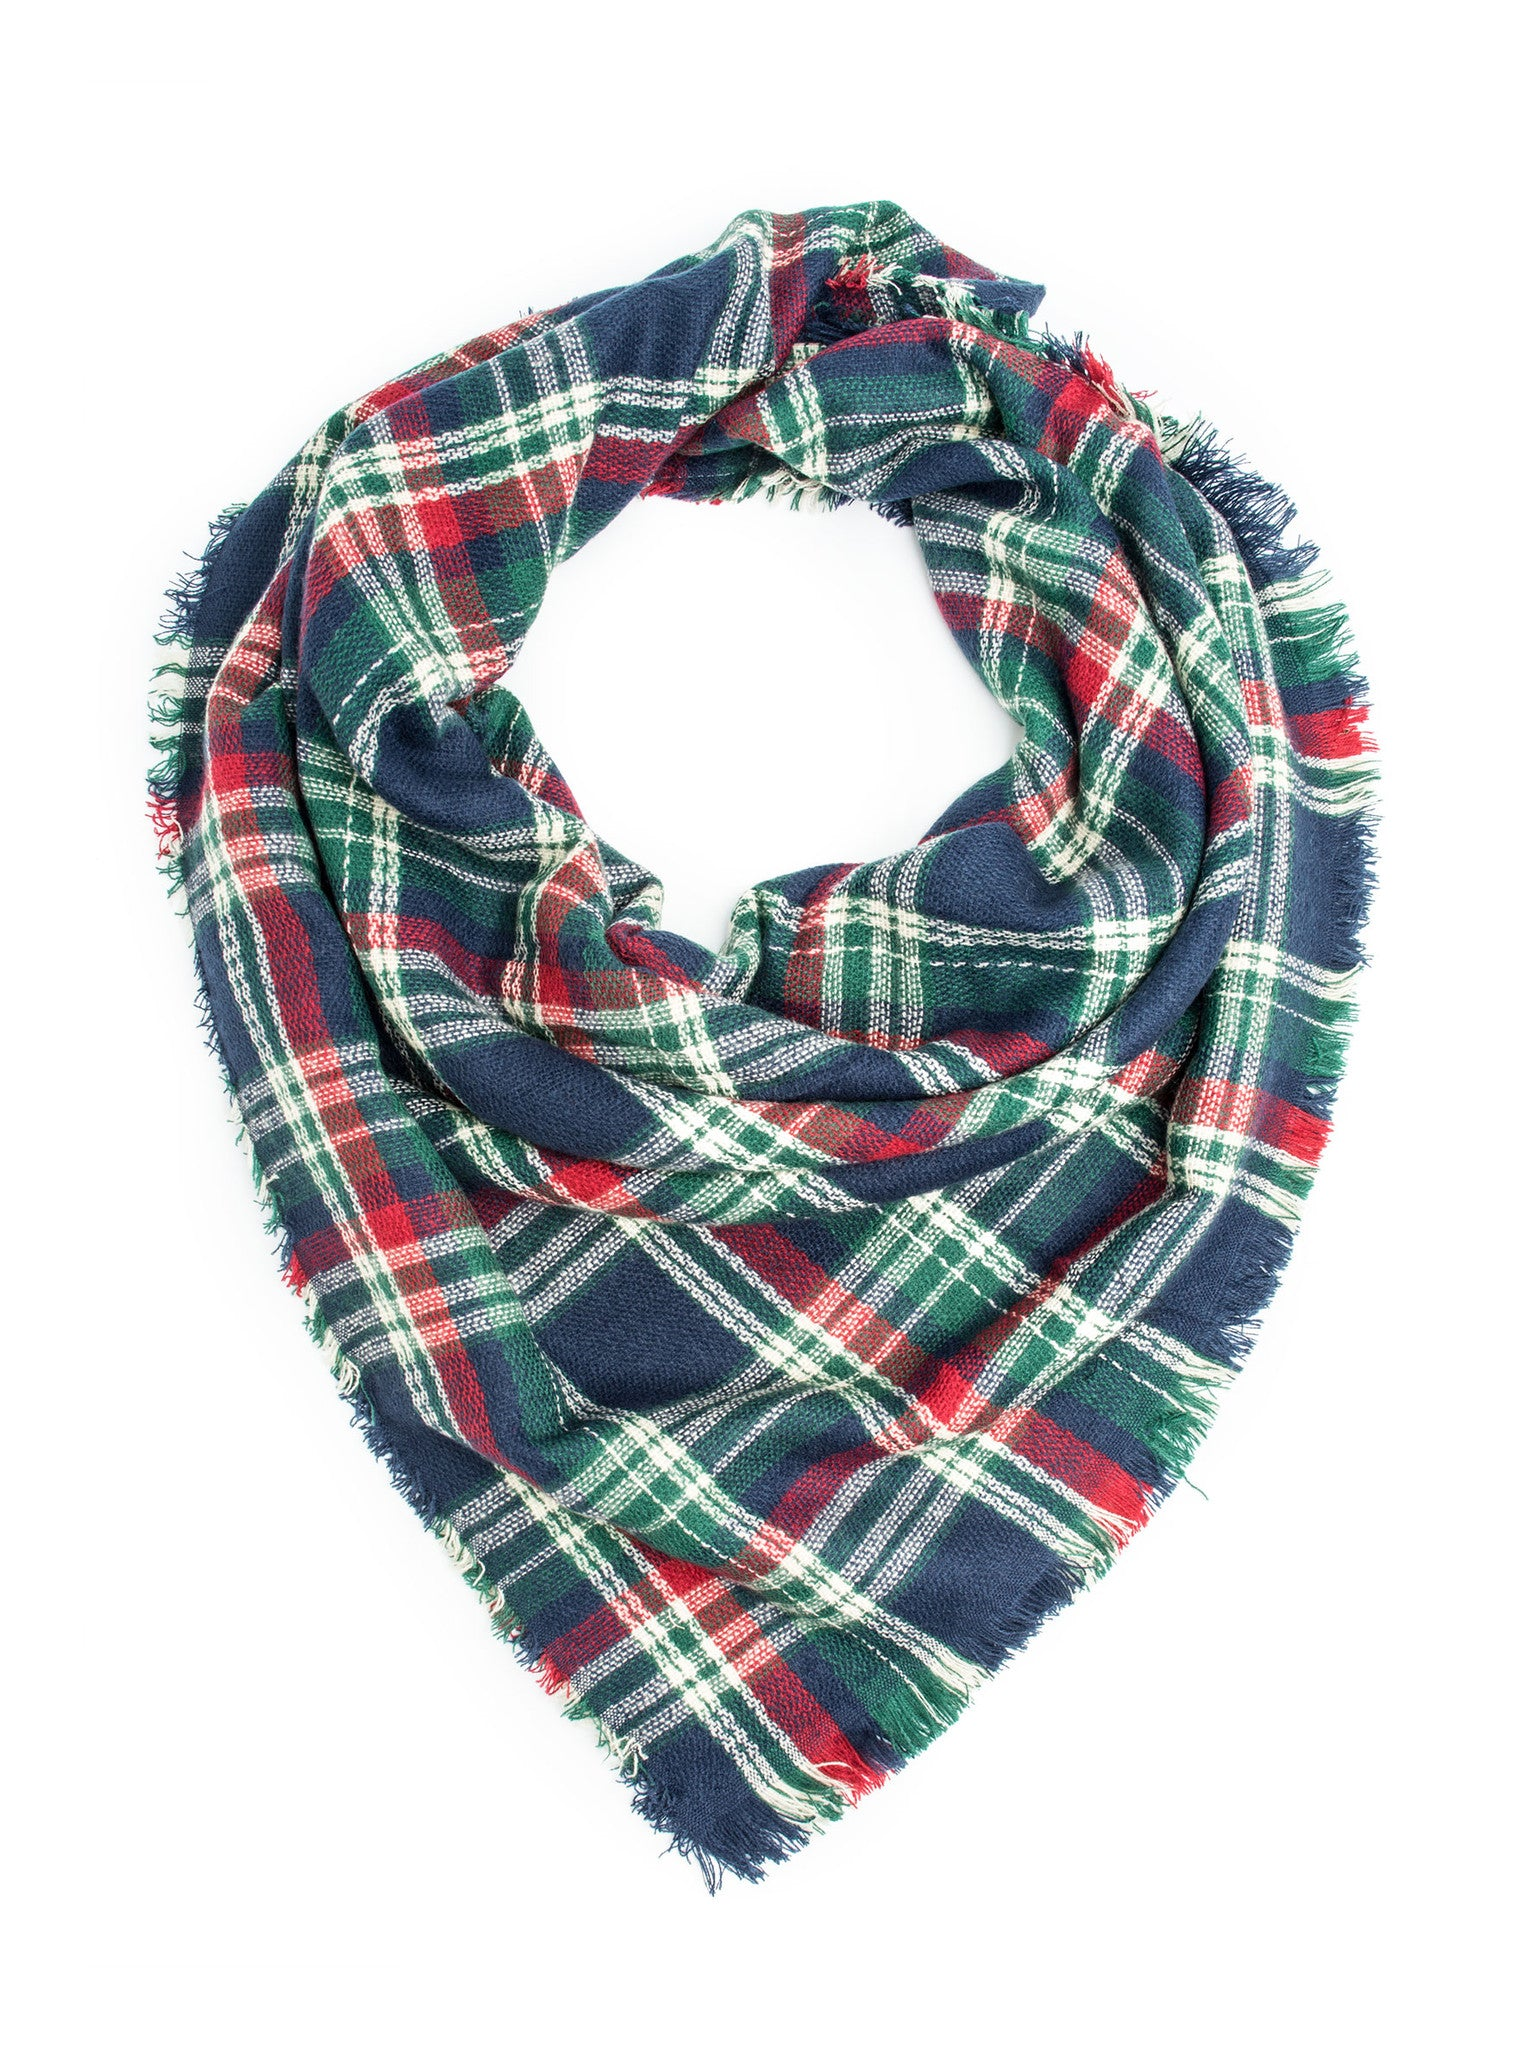 Scarves - Carrie, Oversize Plaid Blanket Scarf, Soft Warm Winter Scarf or Shawl -(Navy/Green/Red) Bohomonde  - 3